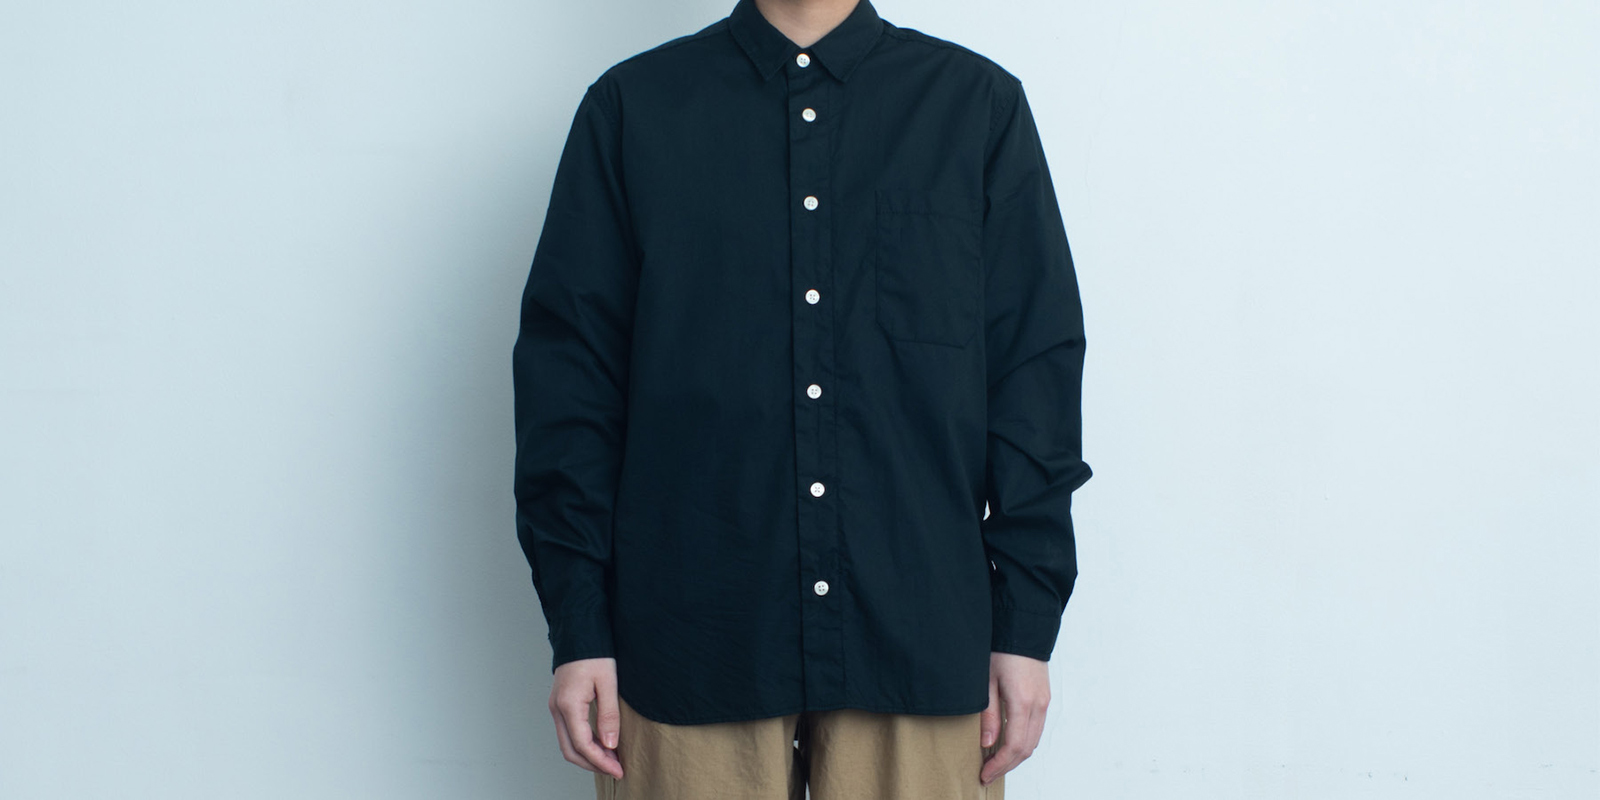 d 205 REGULAR SHIRT・BLACK・XL